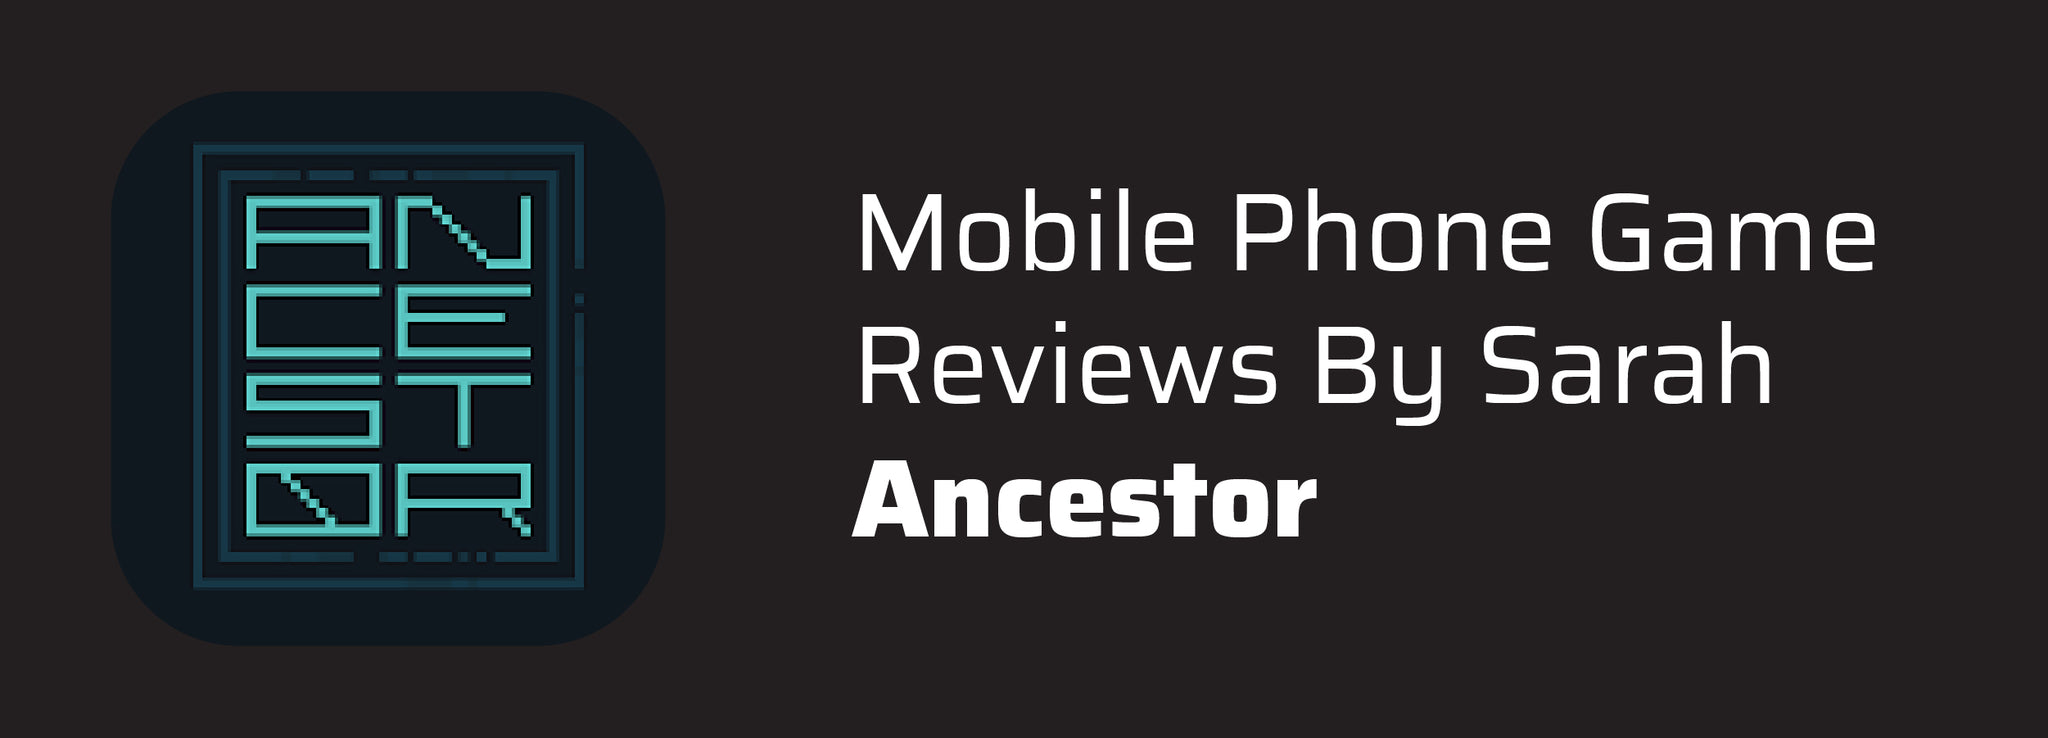 Mobile Phone Game Reviews By Sarah: Ancestor